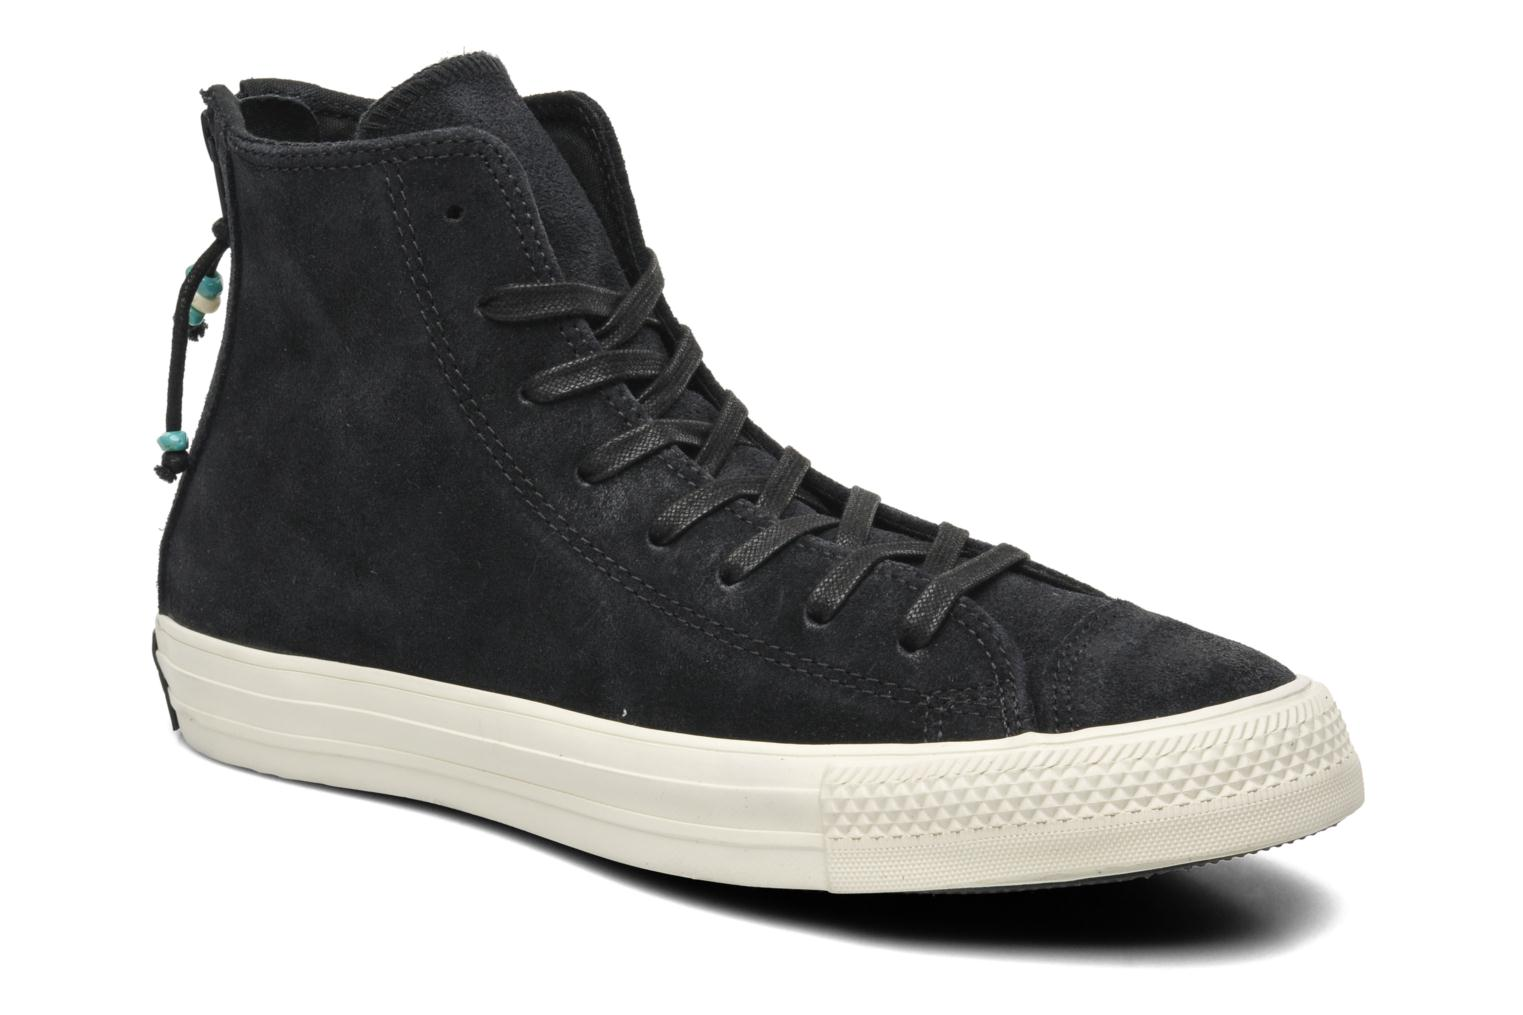 Baskets Converse Chuck Taylor Burnished Suede Double Zip Hi M Noir vue détail/paire